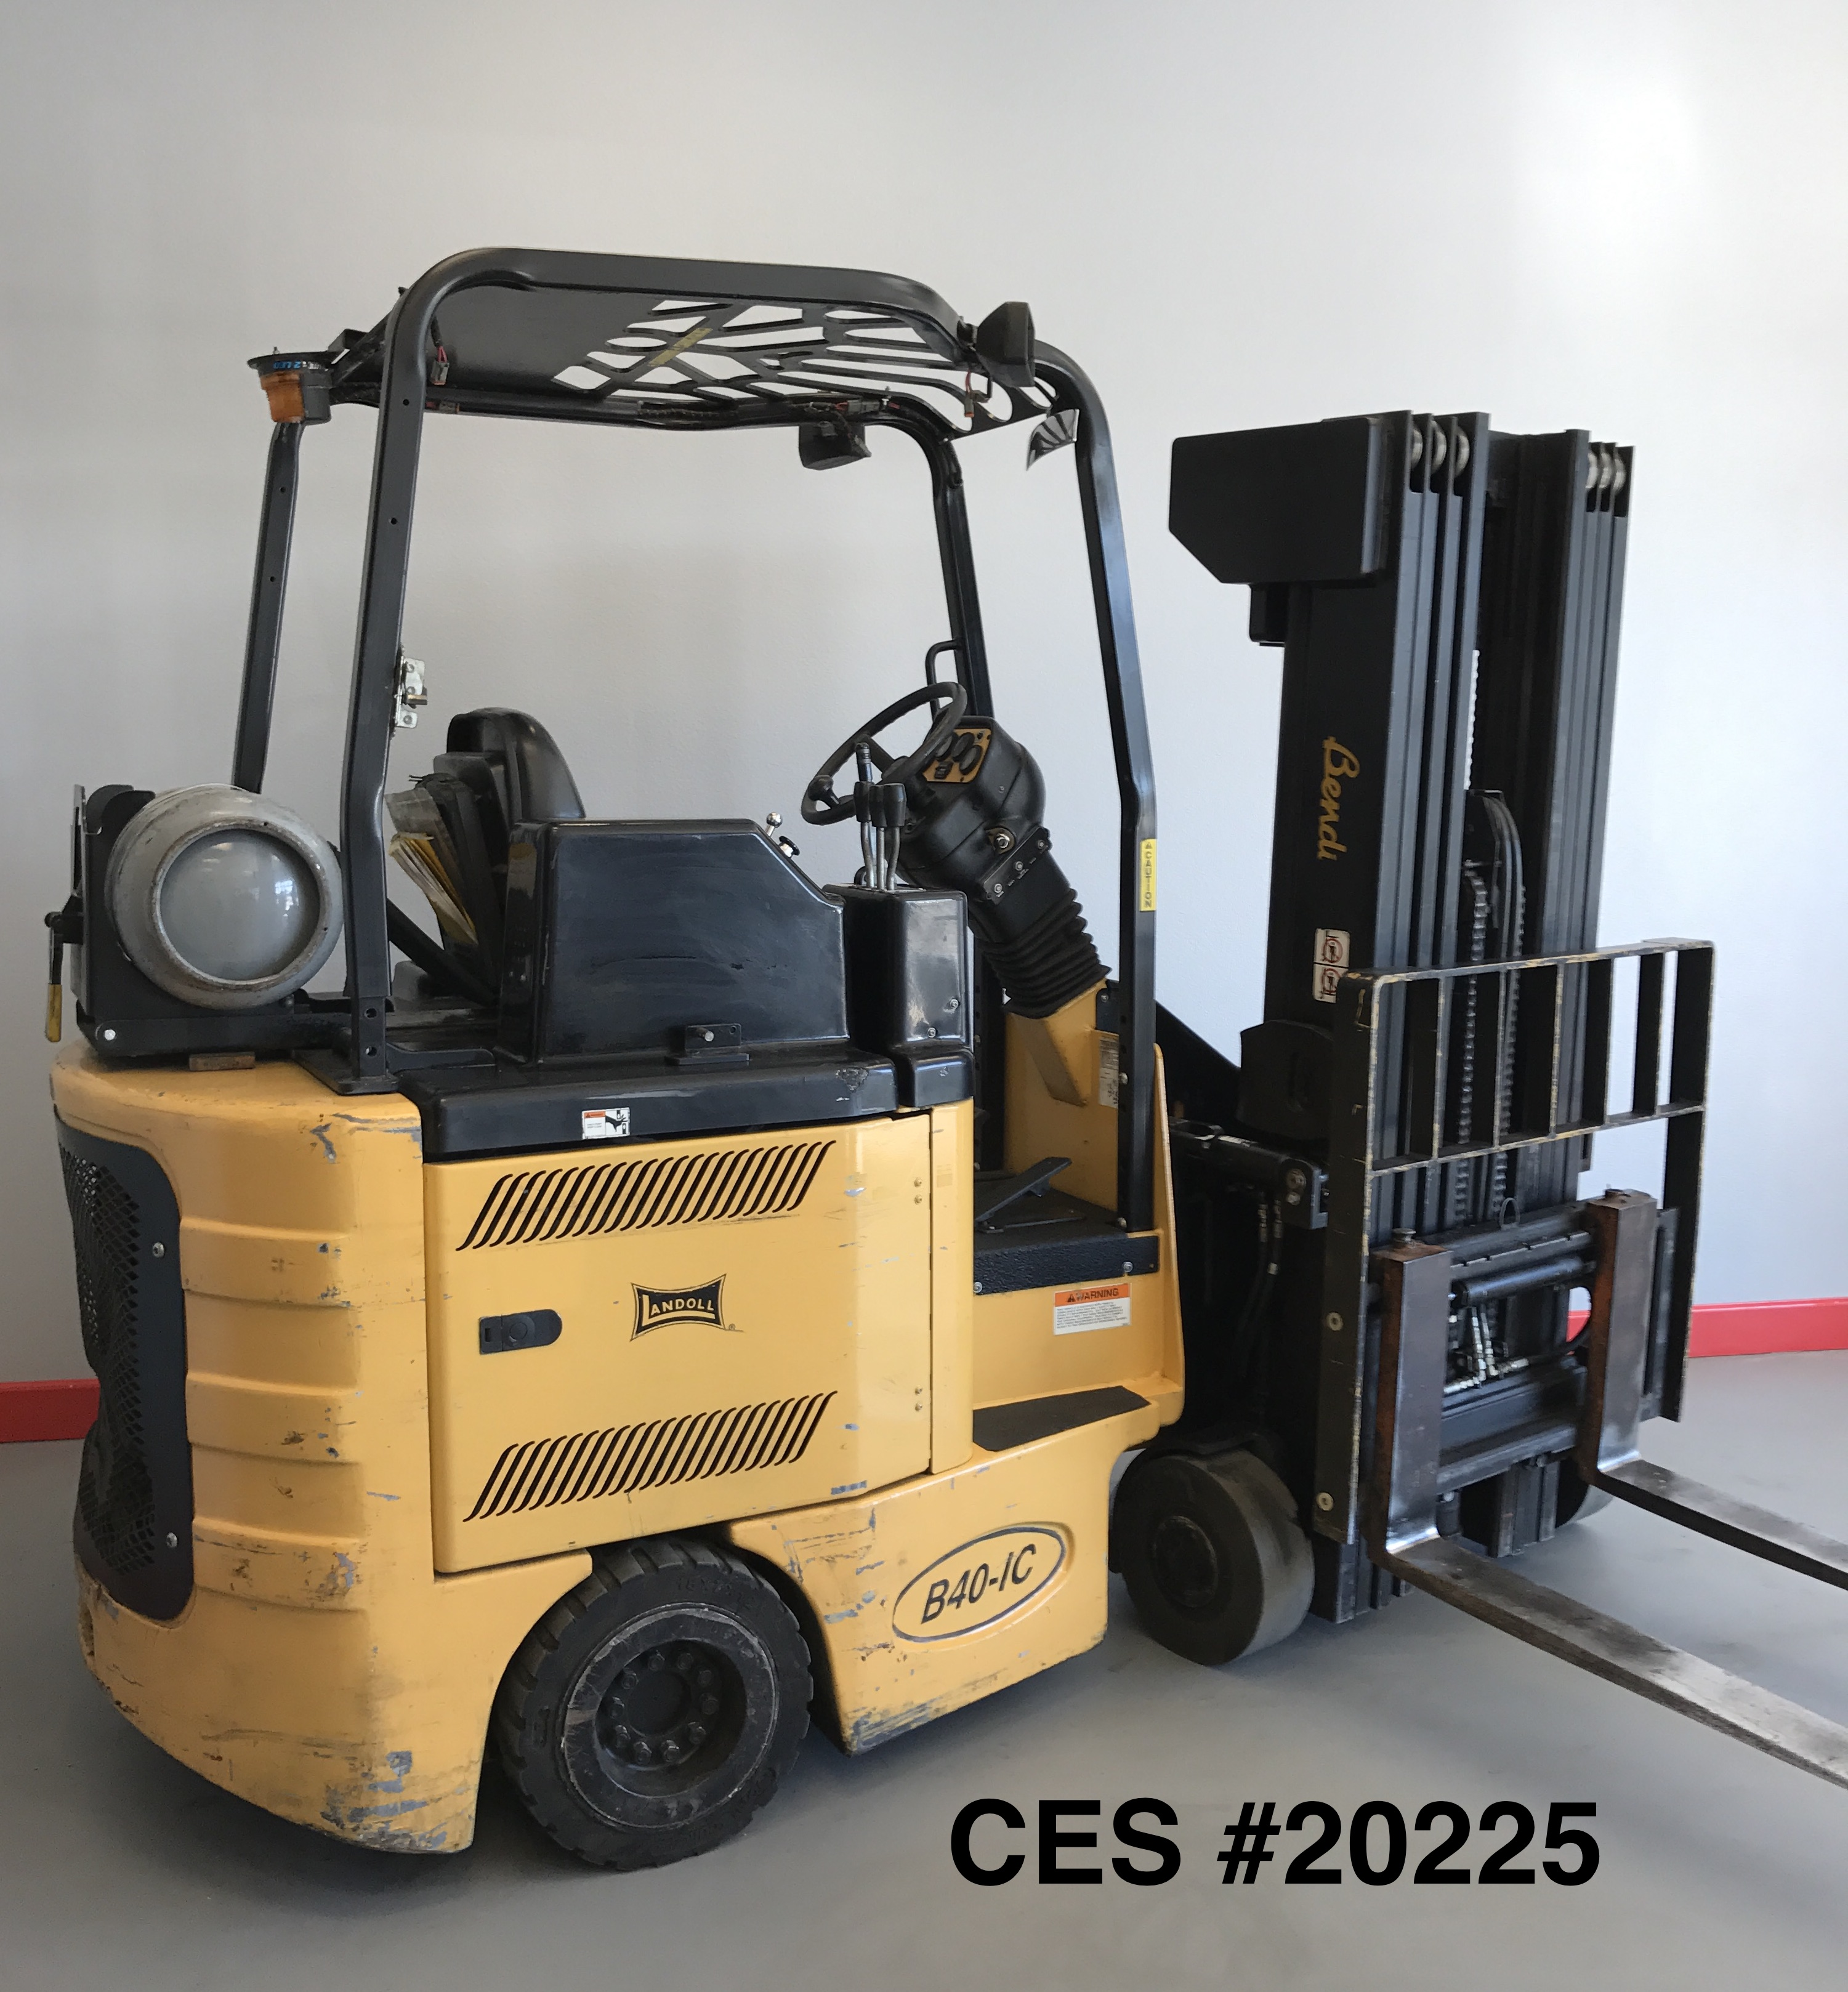 forklift oregon page line full intermodal and promotion forklifts specials financing services a mft flier of mitsubishi